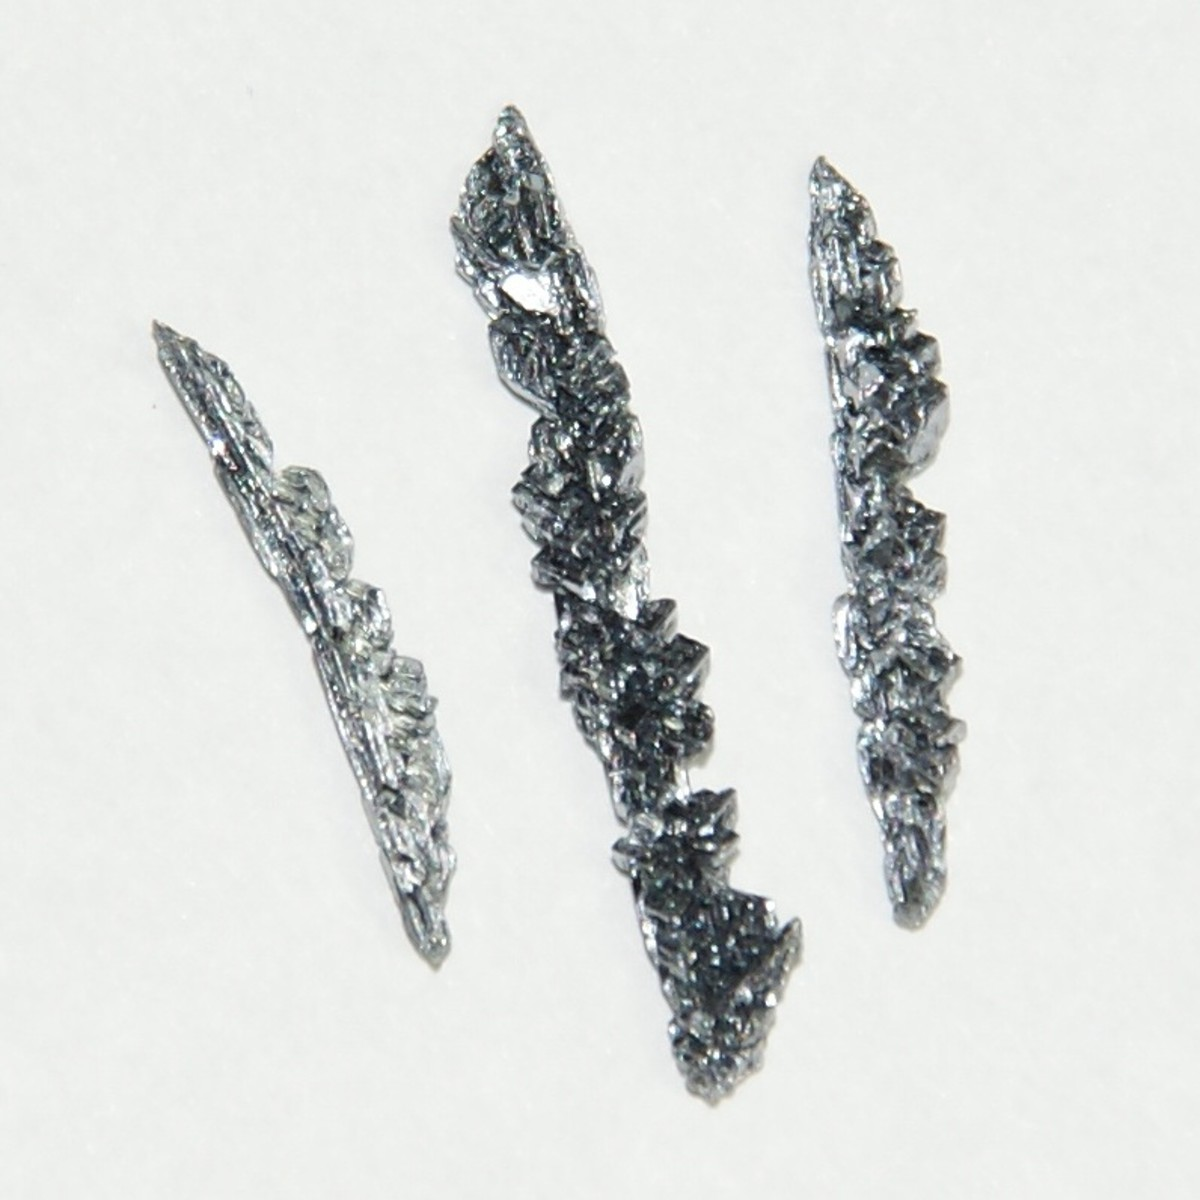 Vanadium crystals made by electrolysis, altogether 1 gram. The largest is 2 cm in length.